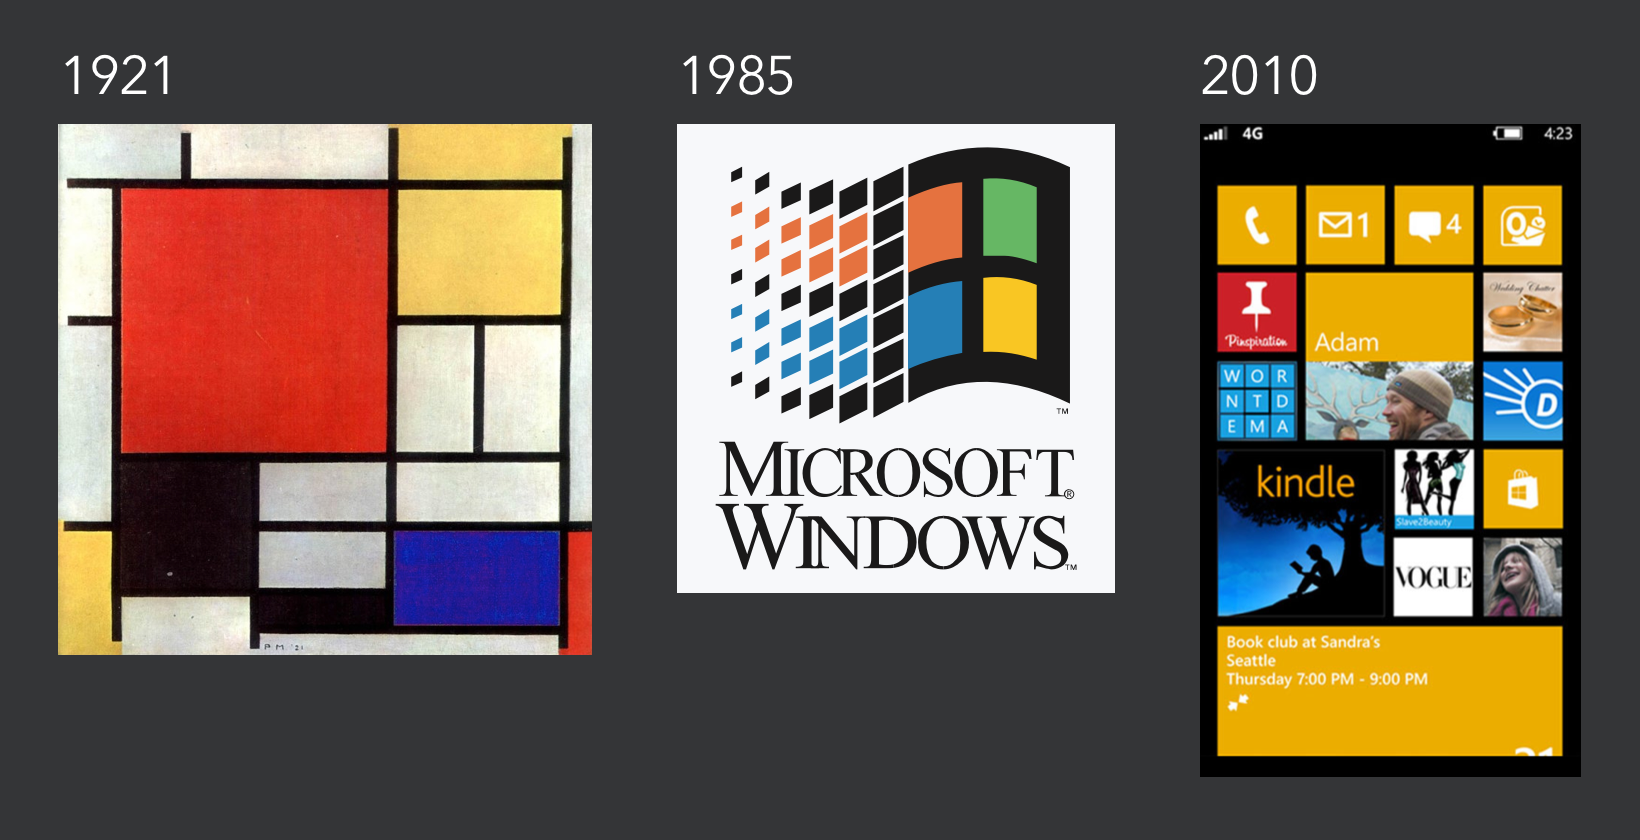 De Stijl painter Piet Mondrian produced Composition with Red, Yellow, and Blue in 1921. His work had an immense impact on design thought. Notice the similarity to the original Windows Logo and the aesthetic of Windows Modern.